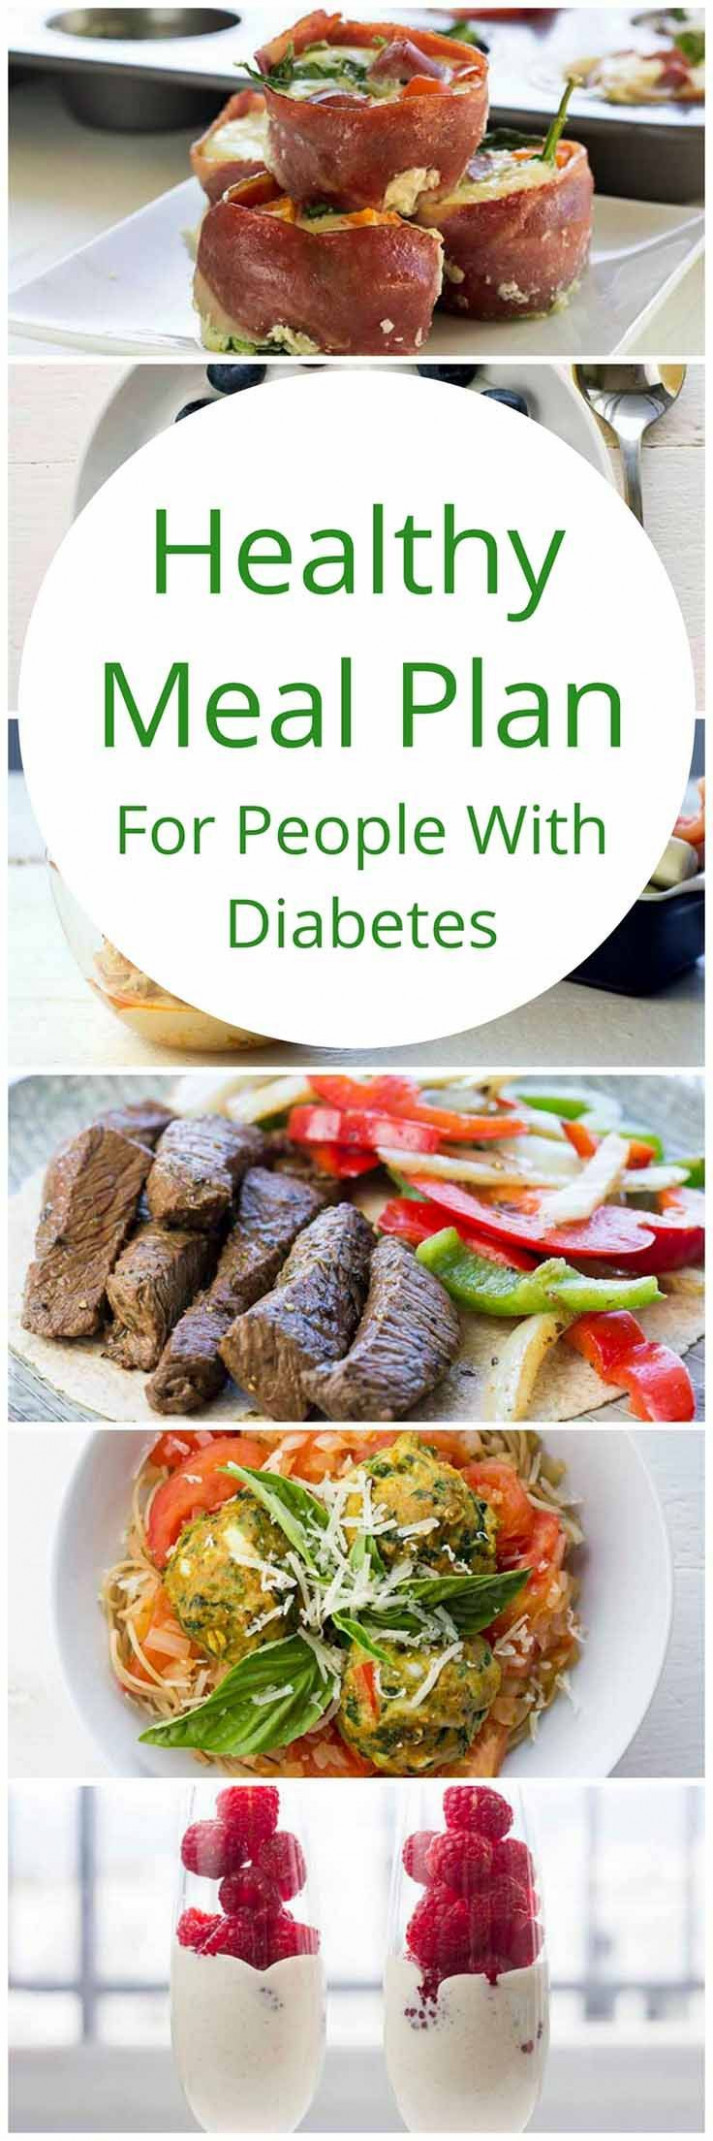 Fit With Diabetes Meal Plan #5 | Your Favorite Healthy ..